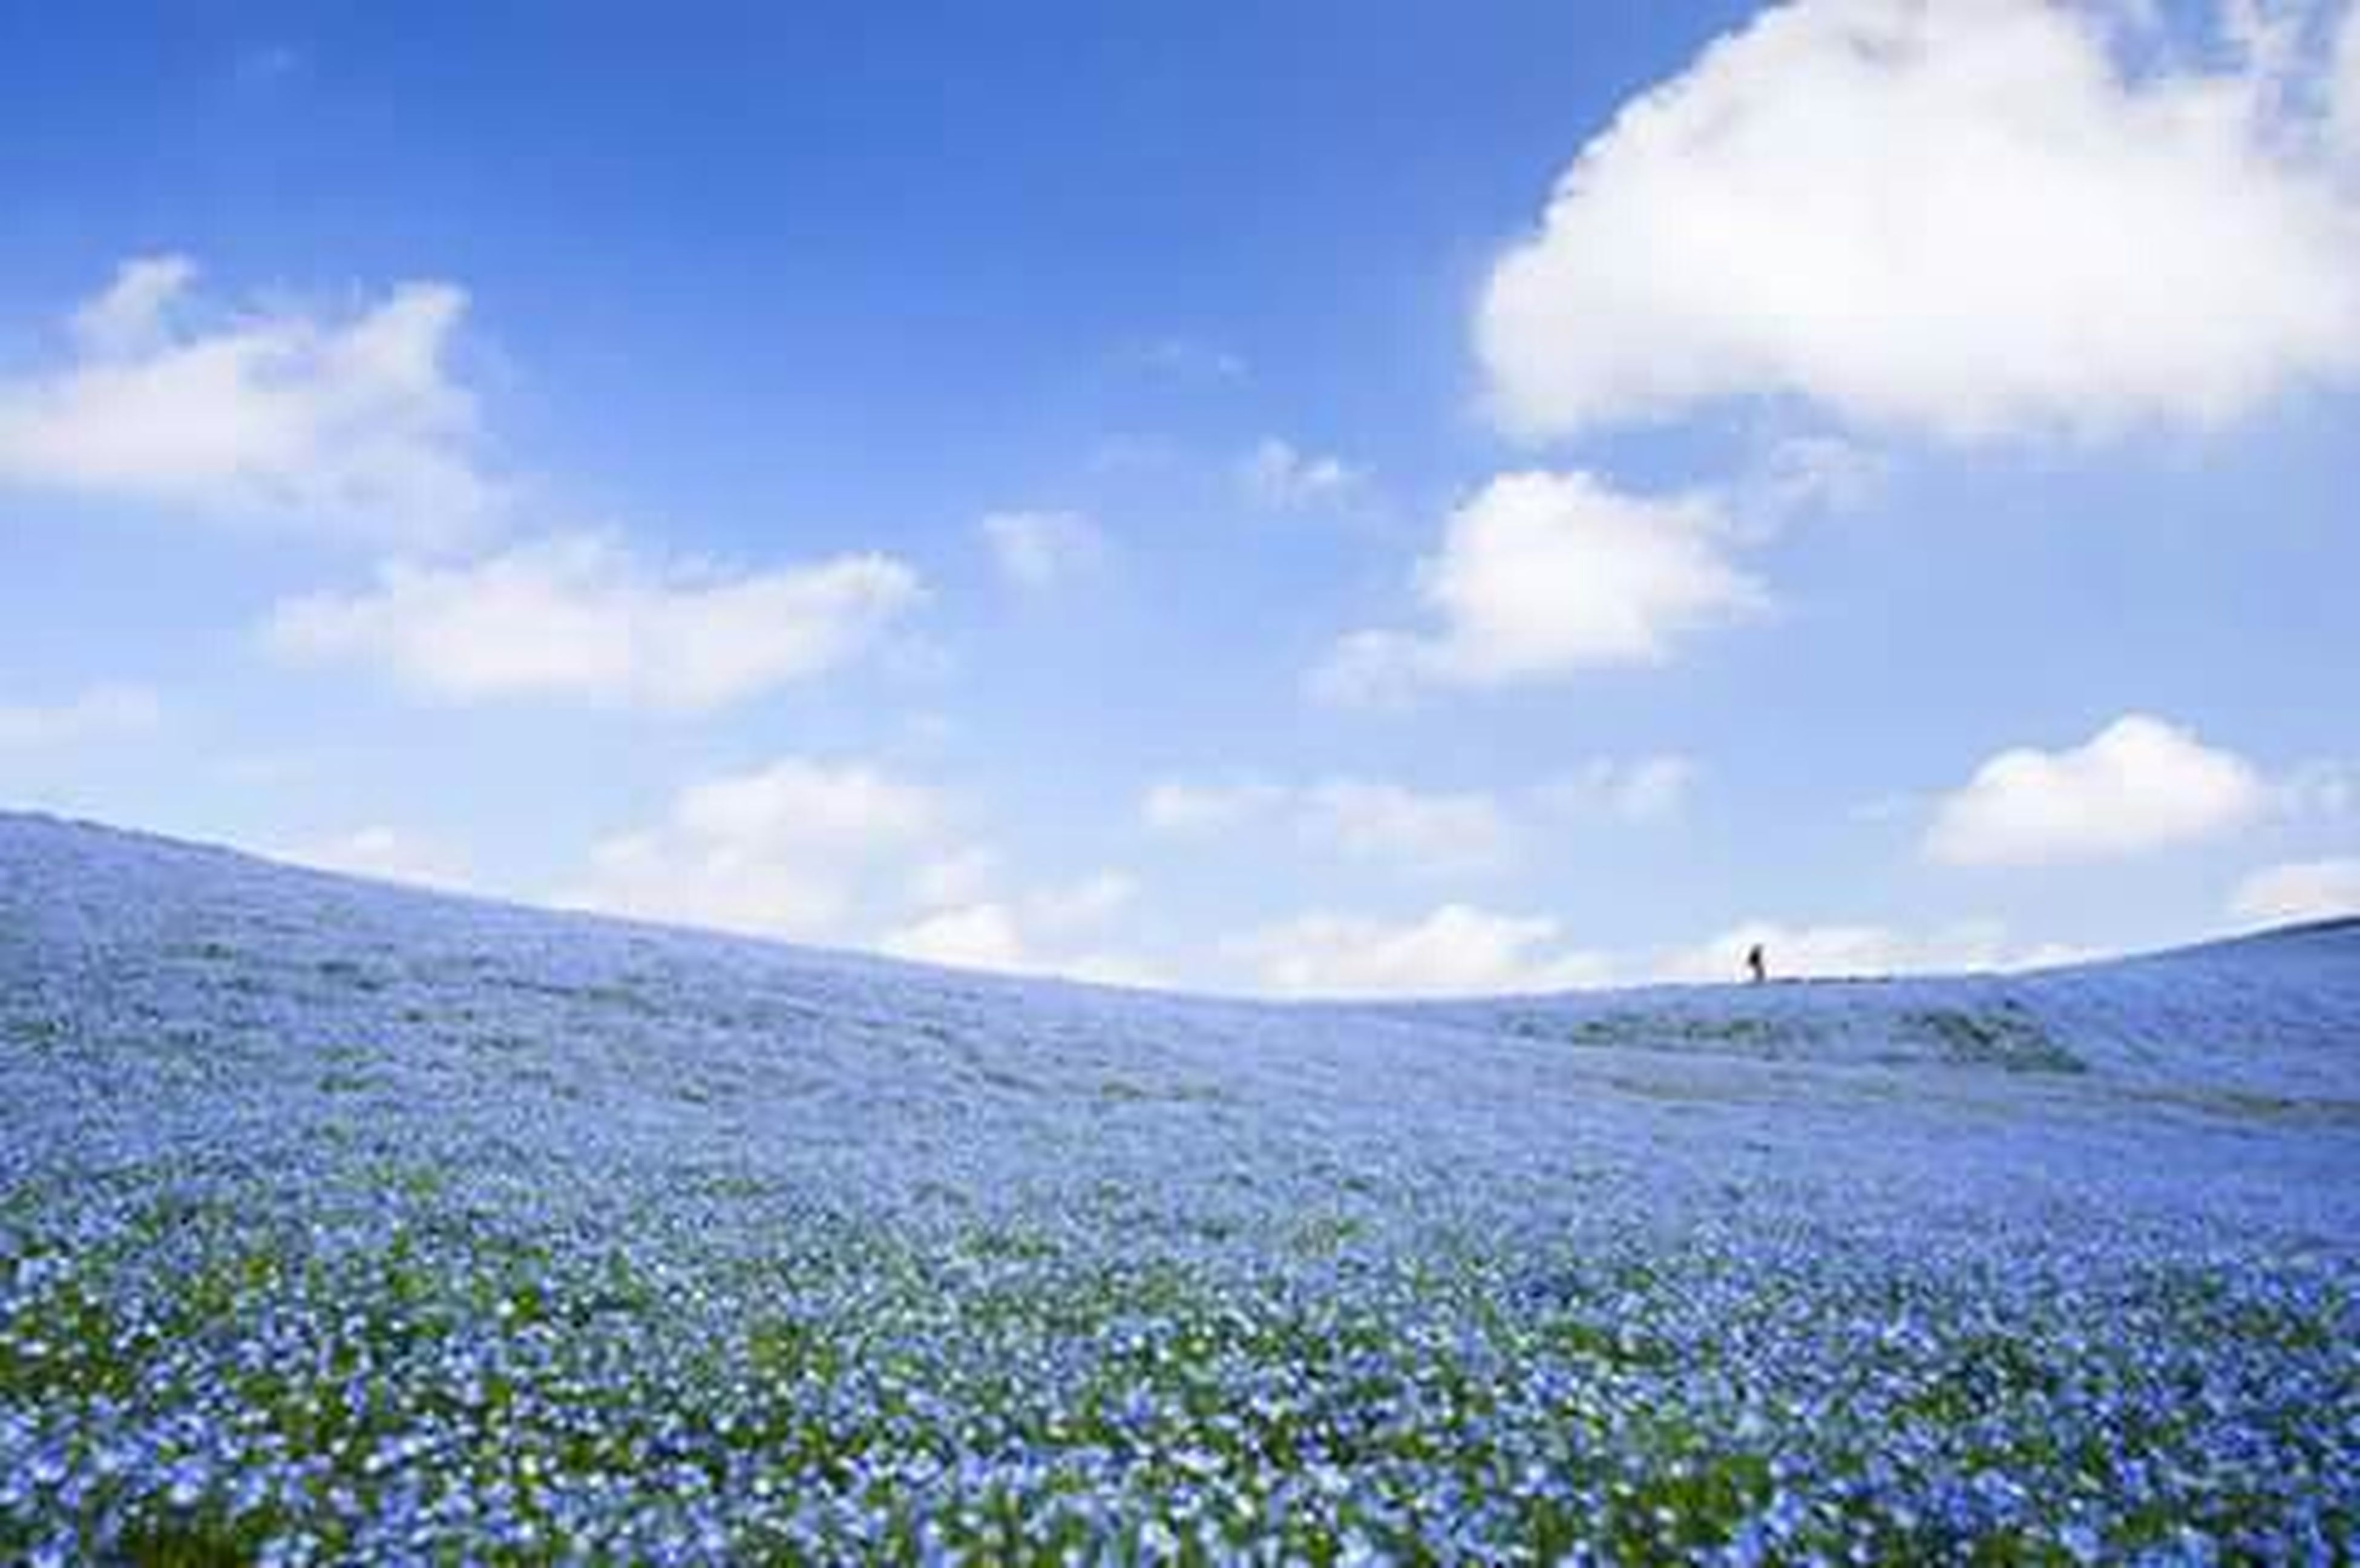 sky, tranquil scene, landscape, tranquility, beauty in nature, scenics, field, flower, nature, cloud - sky, blue, plant, growth, cloud, mountain, non-urban scene, horizon over land, day, grass, rural scene